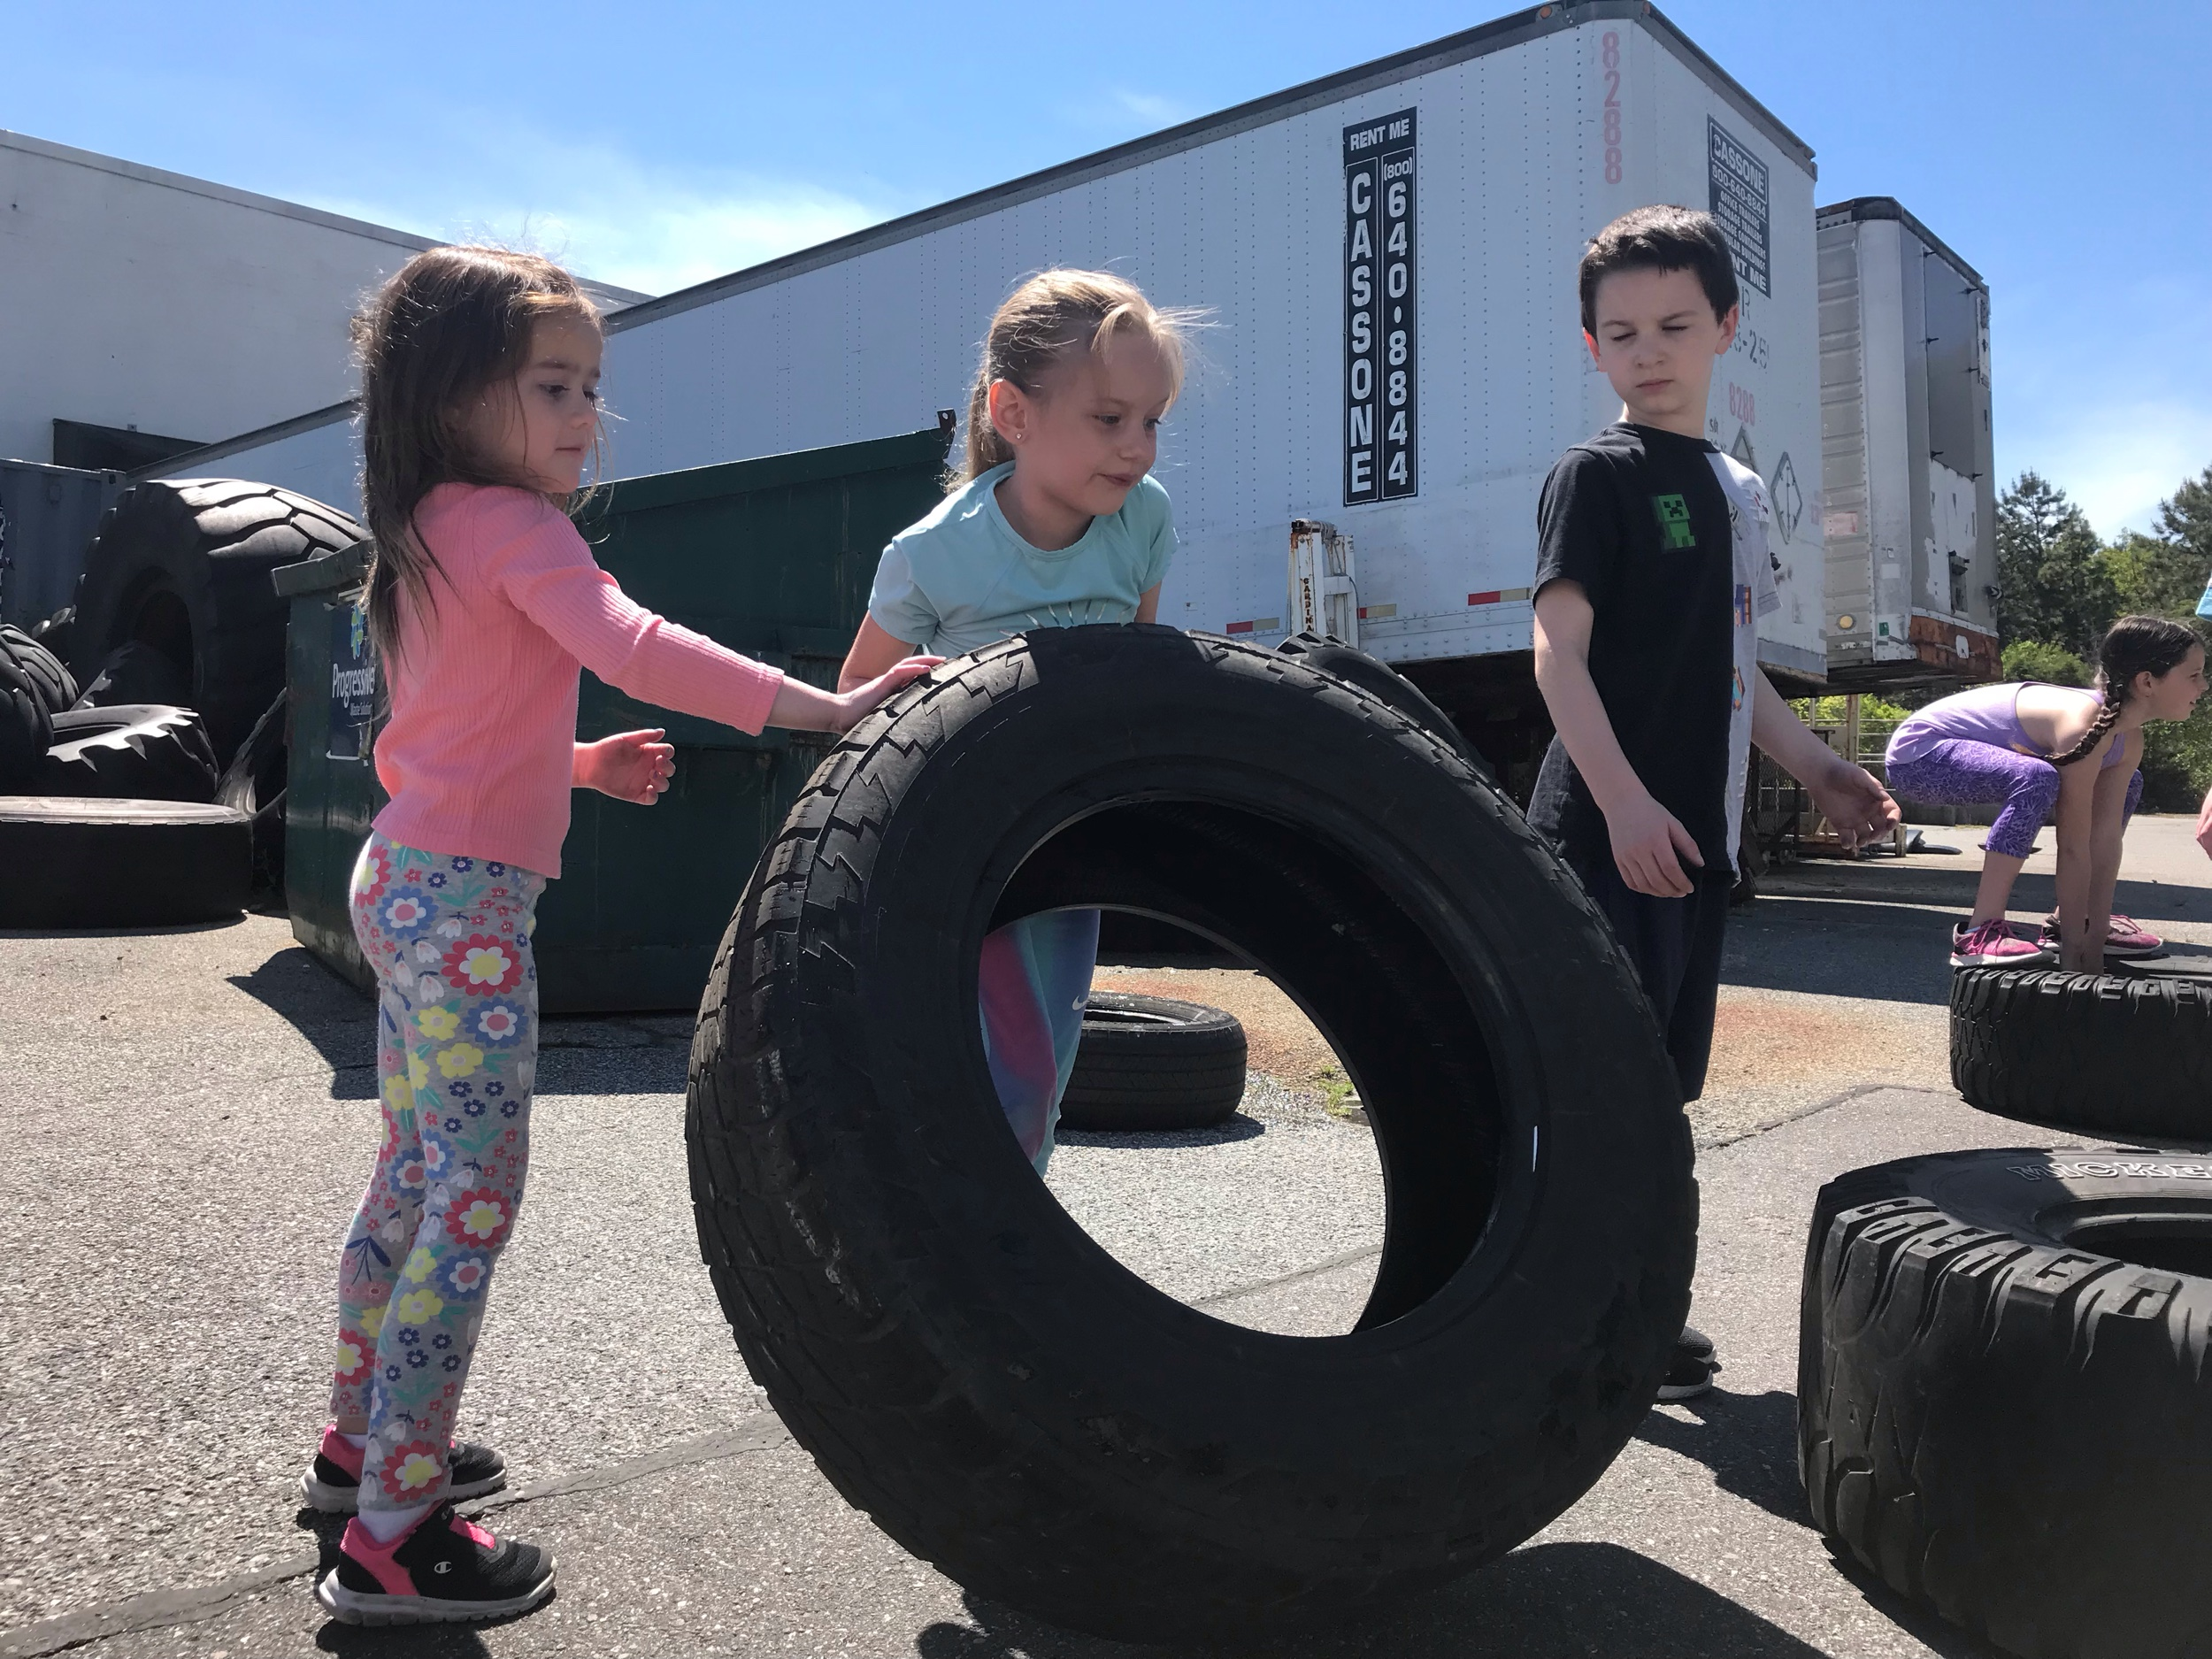 This past Saturday was our last kids class for the spring session and they had a blast! Check out more pics on our Facebook/instagram! Summer camp dates to come!